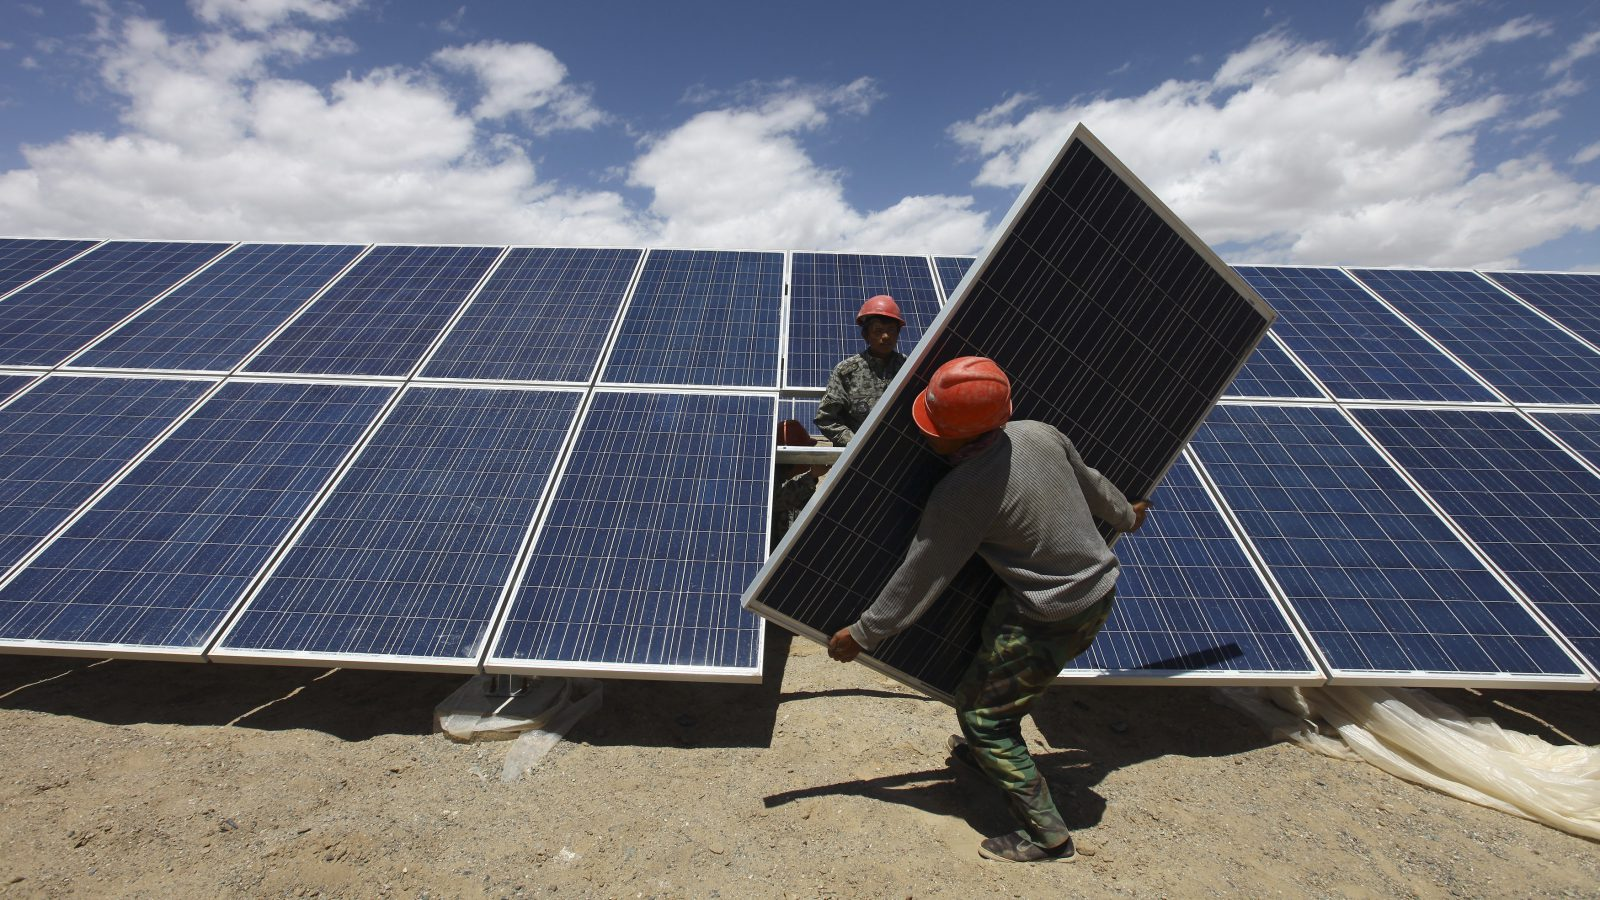 Workers install a solar panel in Jiuquan.